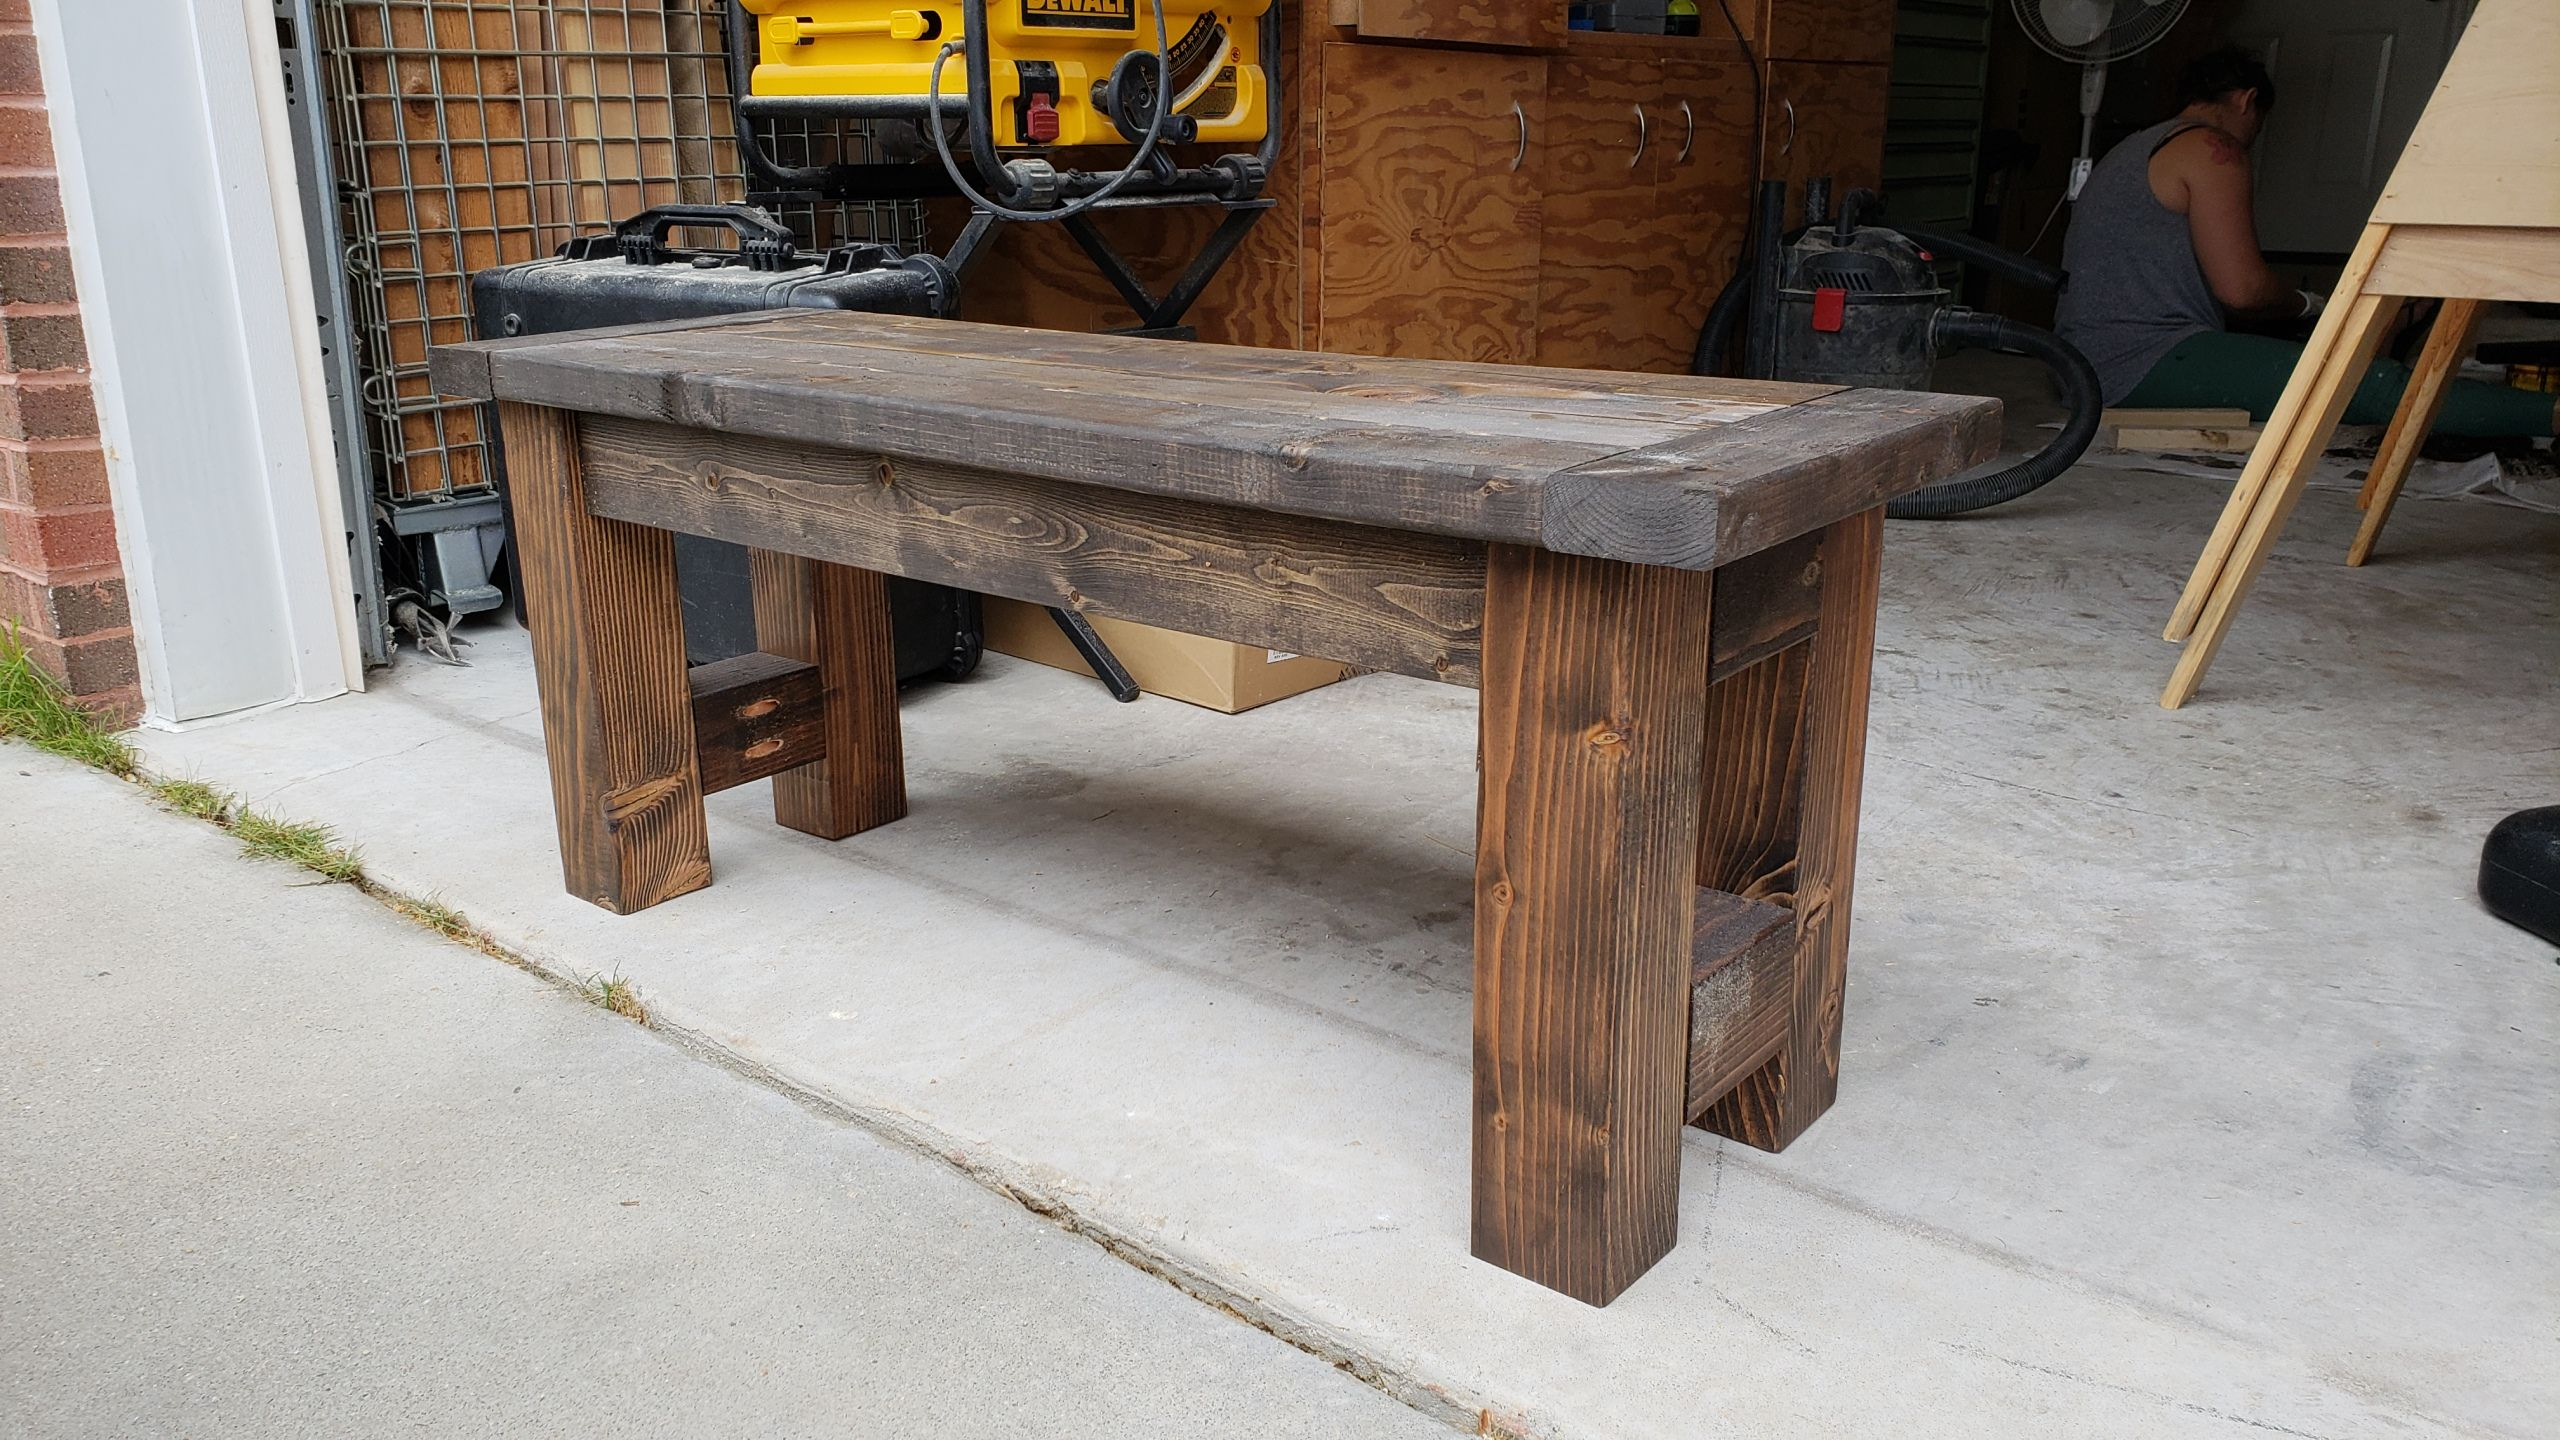 Ana white modified farmhouse bench diy projects